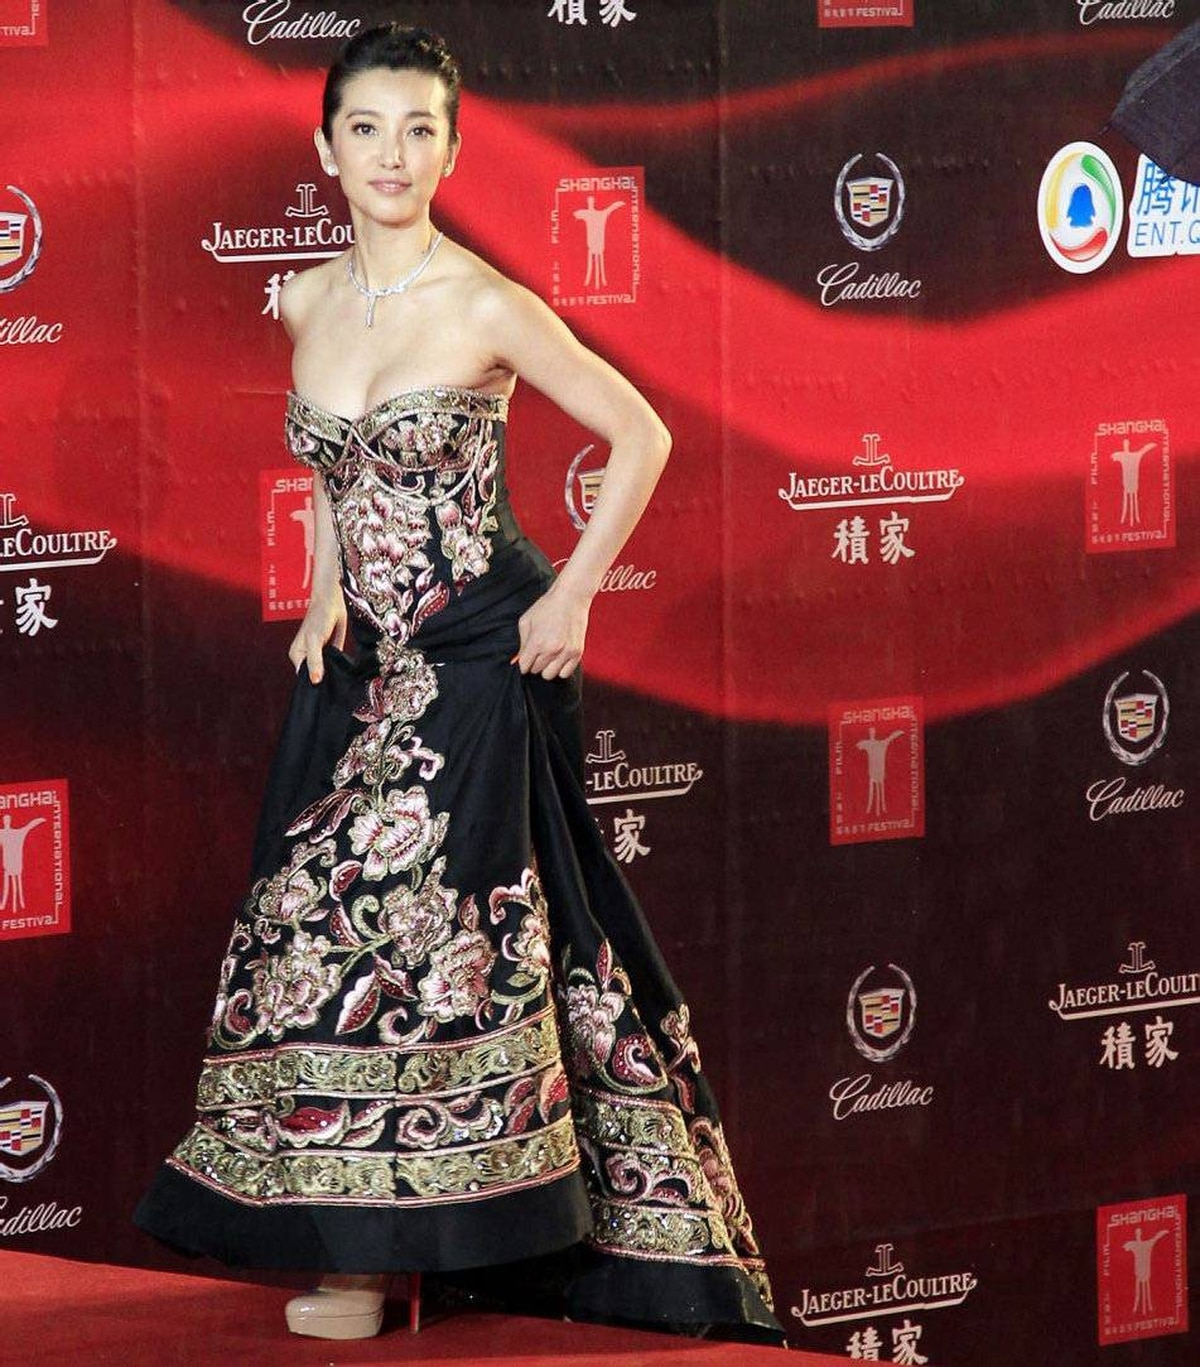 Chinese actress Li Bingbing walks on the red carpet prior to the opening ceremony of the Shanghai International Film Festival at Shanghai Grand Theater Saturday June 11, 2011 in Shanghai. China.